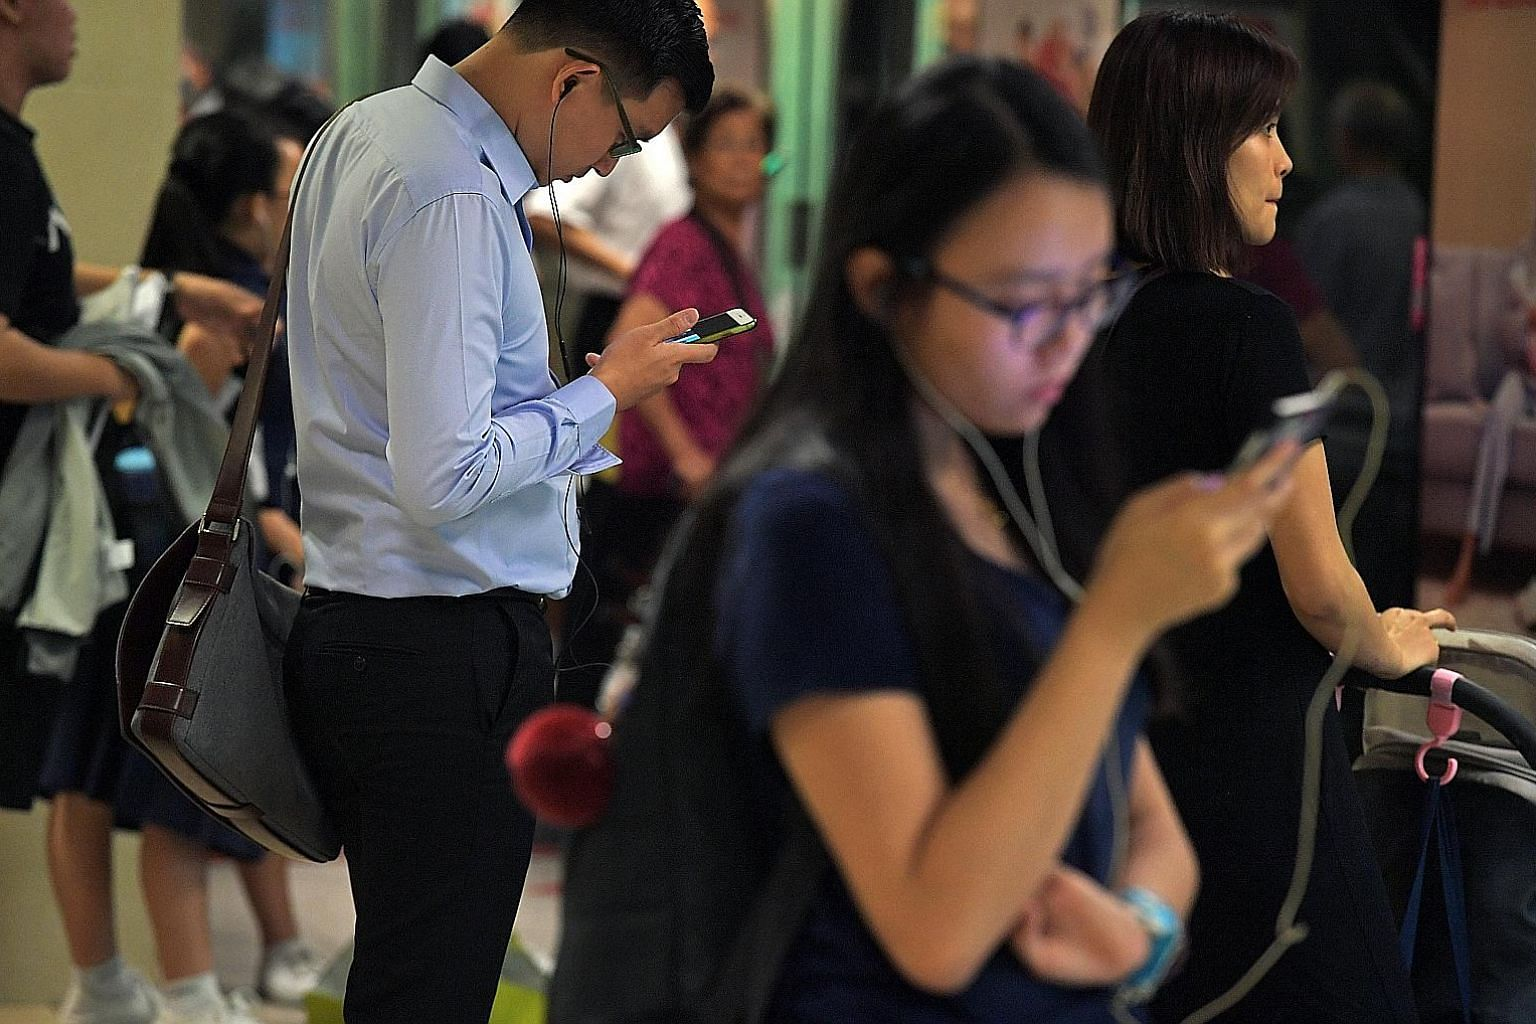 Singapore's mobile broadband ranking slipped to No. 4 in the Ookla Net Index with an average 3G and 4G surfing speed of 45.99Mbps - trailing behind Norway, the Netherlands and Hungary.